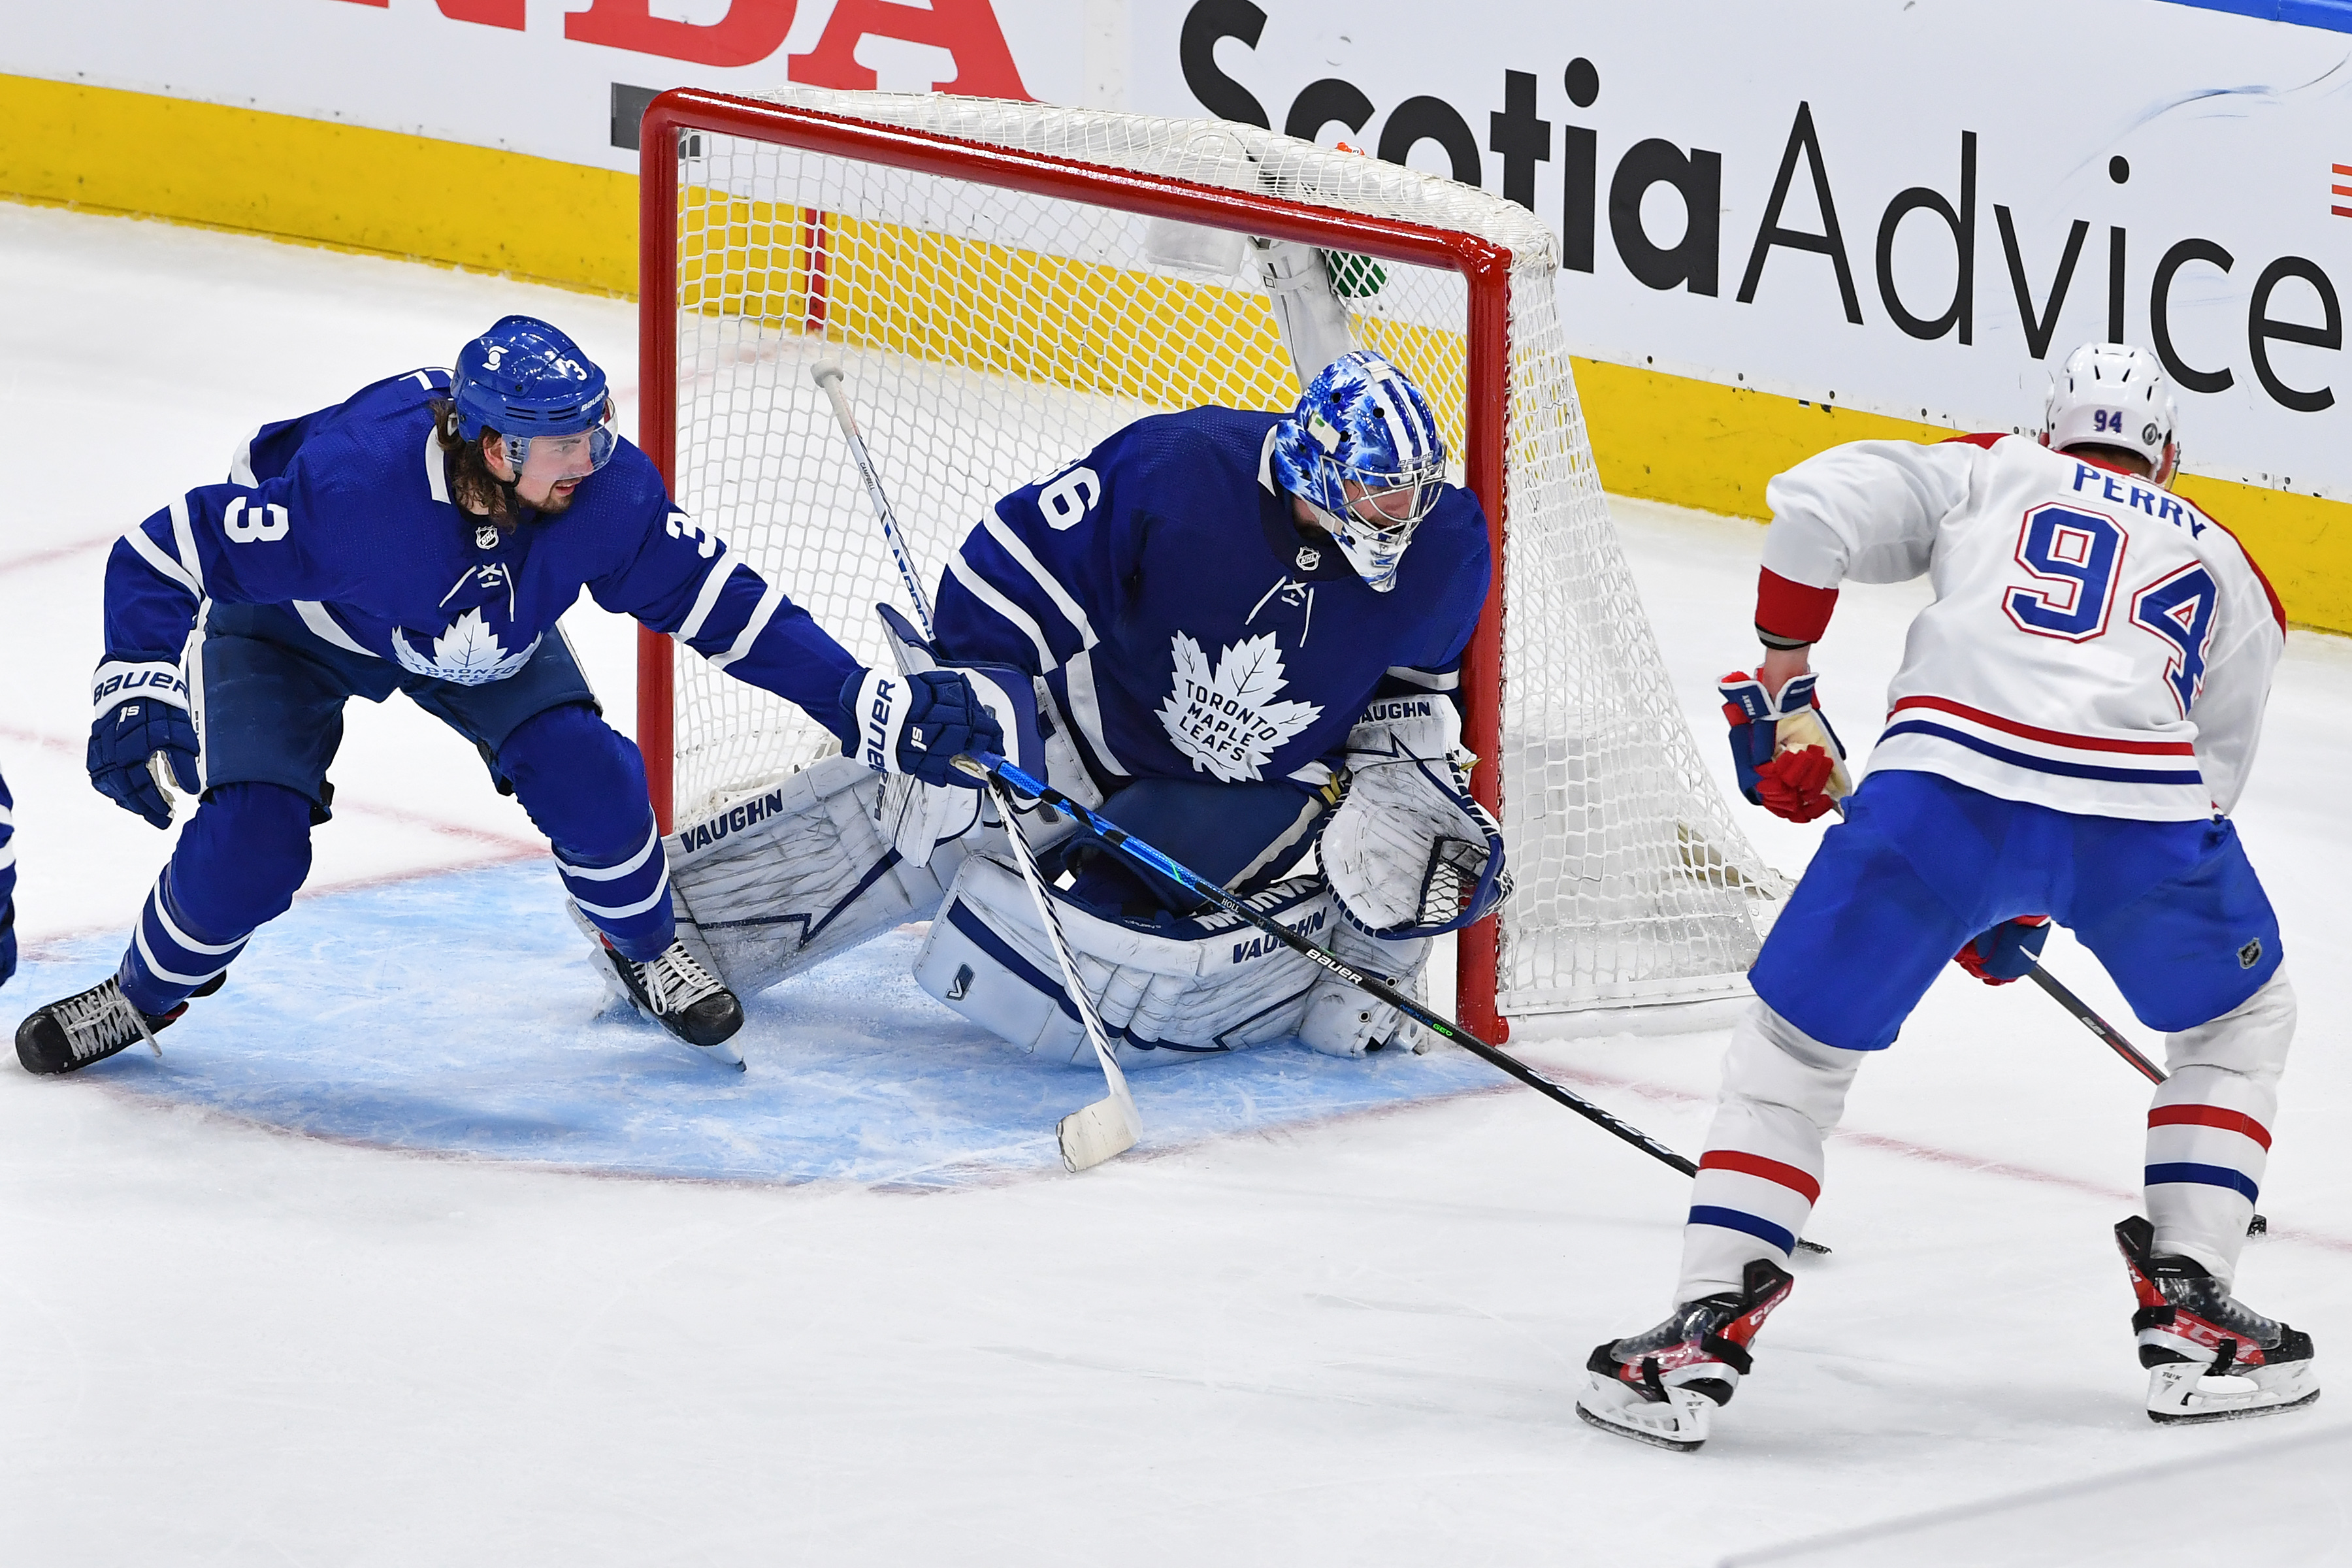 NHL: MAY 20 Stanley Cup Playoffs First Round - Canadiens at Maple Leafs